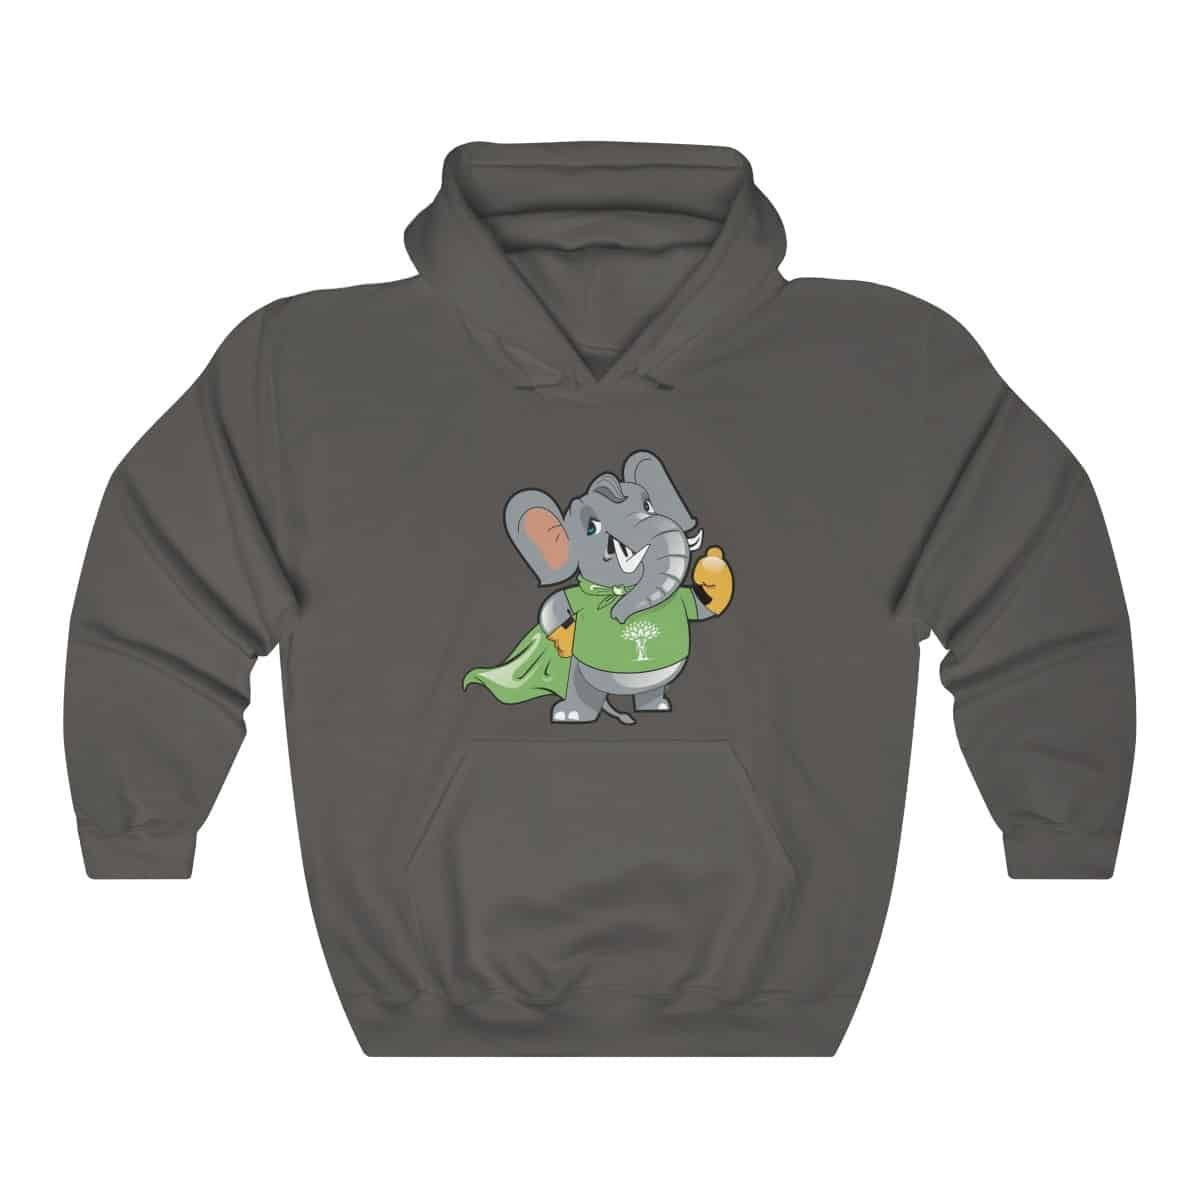 Flash sale! Take $10 off the price of our Effie mascot hoodie using the coupon code EFFIE2019. https://buff.ly/2BFlmMupic.twitter.com/MHZetoRCnb